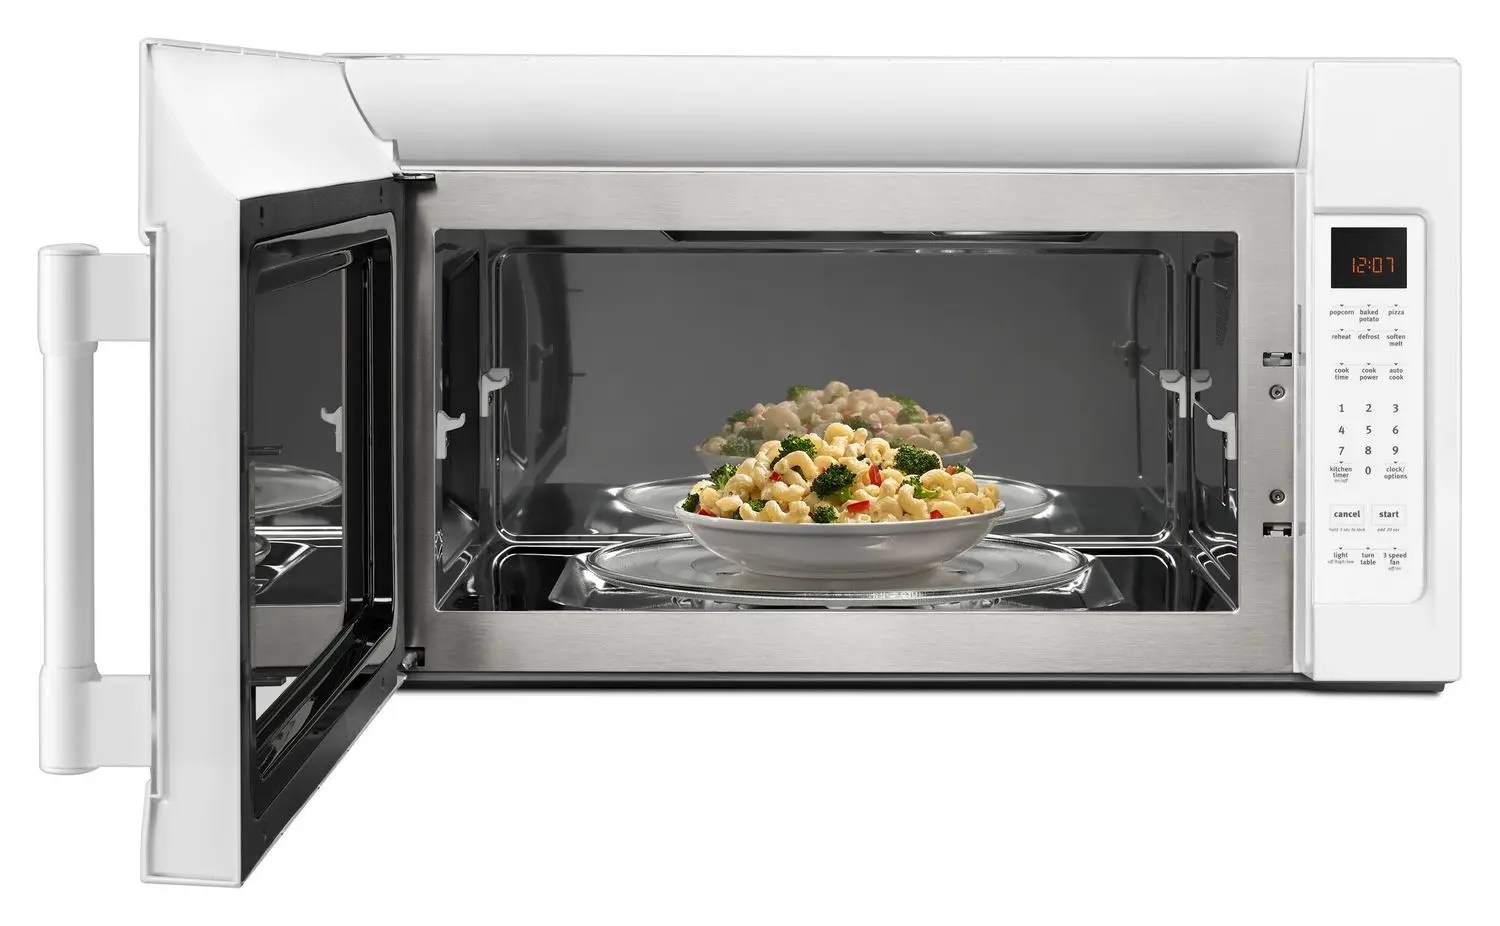 Mmv4206fw Maytag Over The Range Microwave With Interior Cooking Rack 2 Cu Ft White White Manuel Joseph Appliance Center